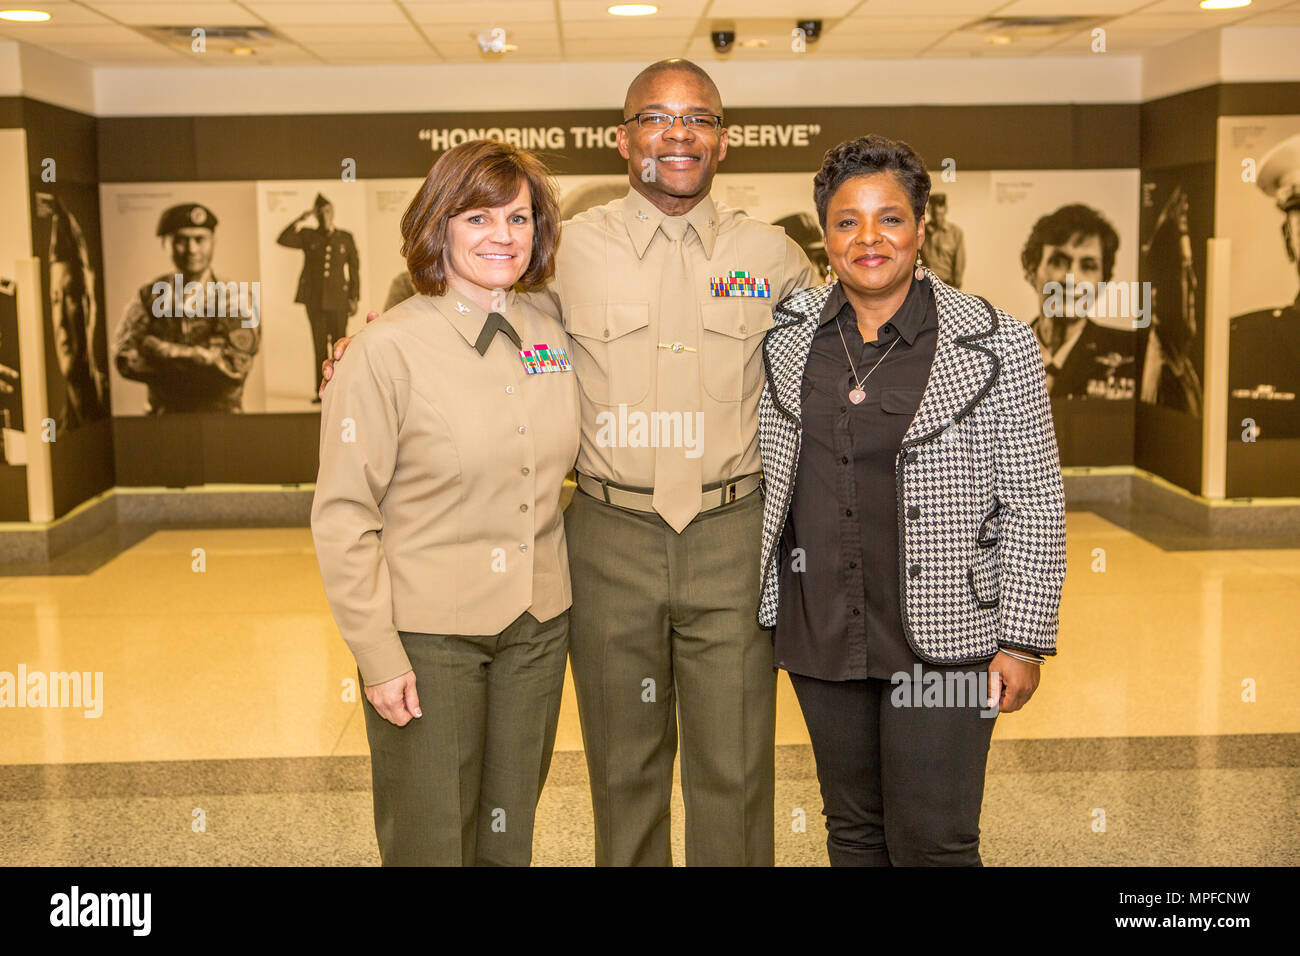 From left, U.S. Marine Corps Col. Cheryl Blackstone, deputy director, G-10 Force Preservation; Col. David D. Scott, real estate analysis, Marine Corps Installations Command and Deanna Scott pose for a photo after Scott's promotion ceremony at the Pentagon, Arlington, Va. on Feb. 17, 2017. Scott was promoted from the rank of Lt. Col. to Col. (U.S. Marine Corps photo by Lance Cpl. Paul A. Ochoa) Stock Photo